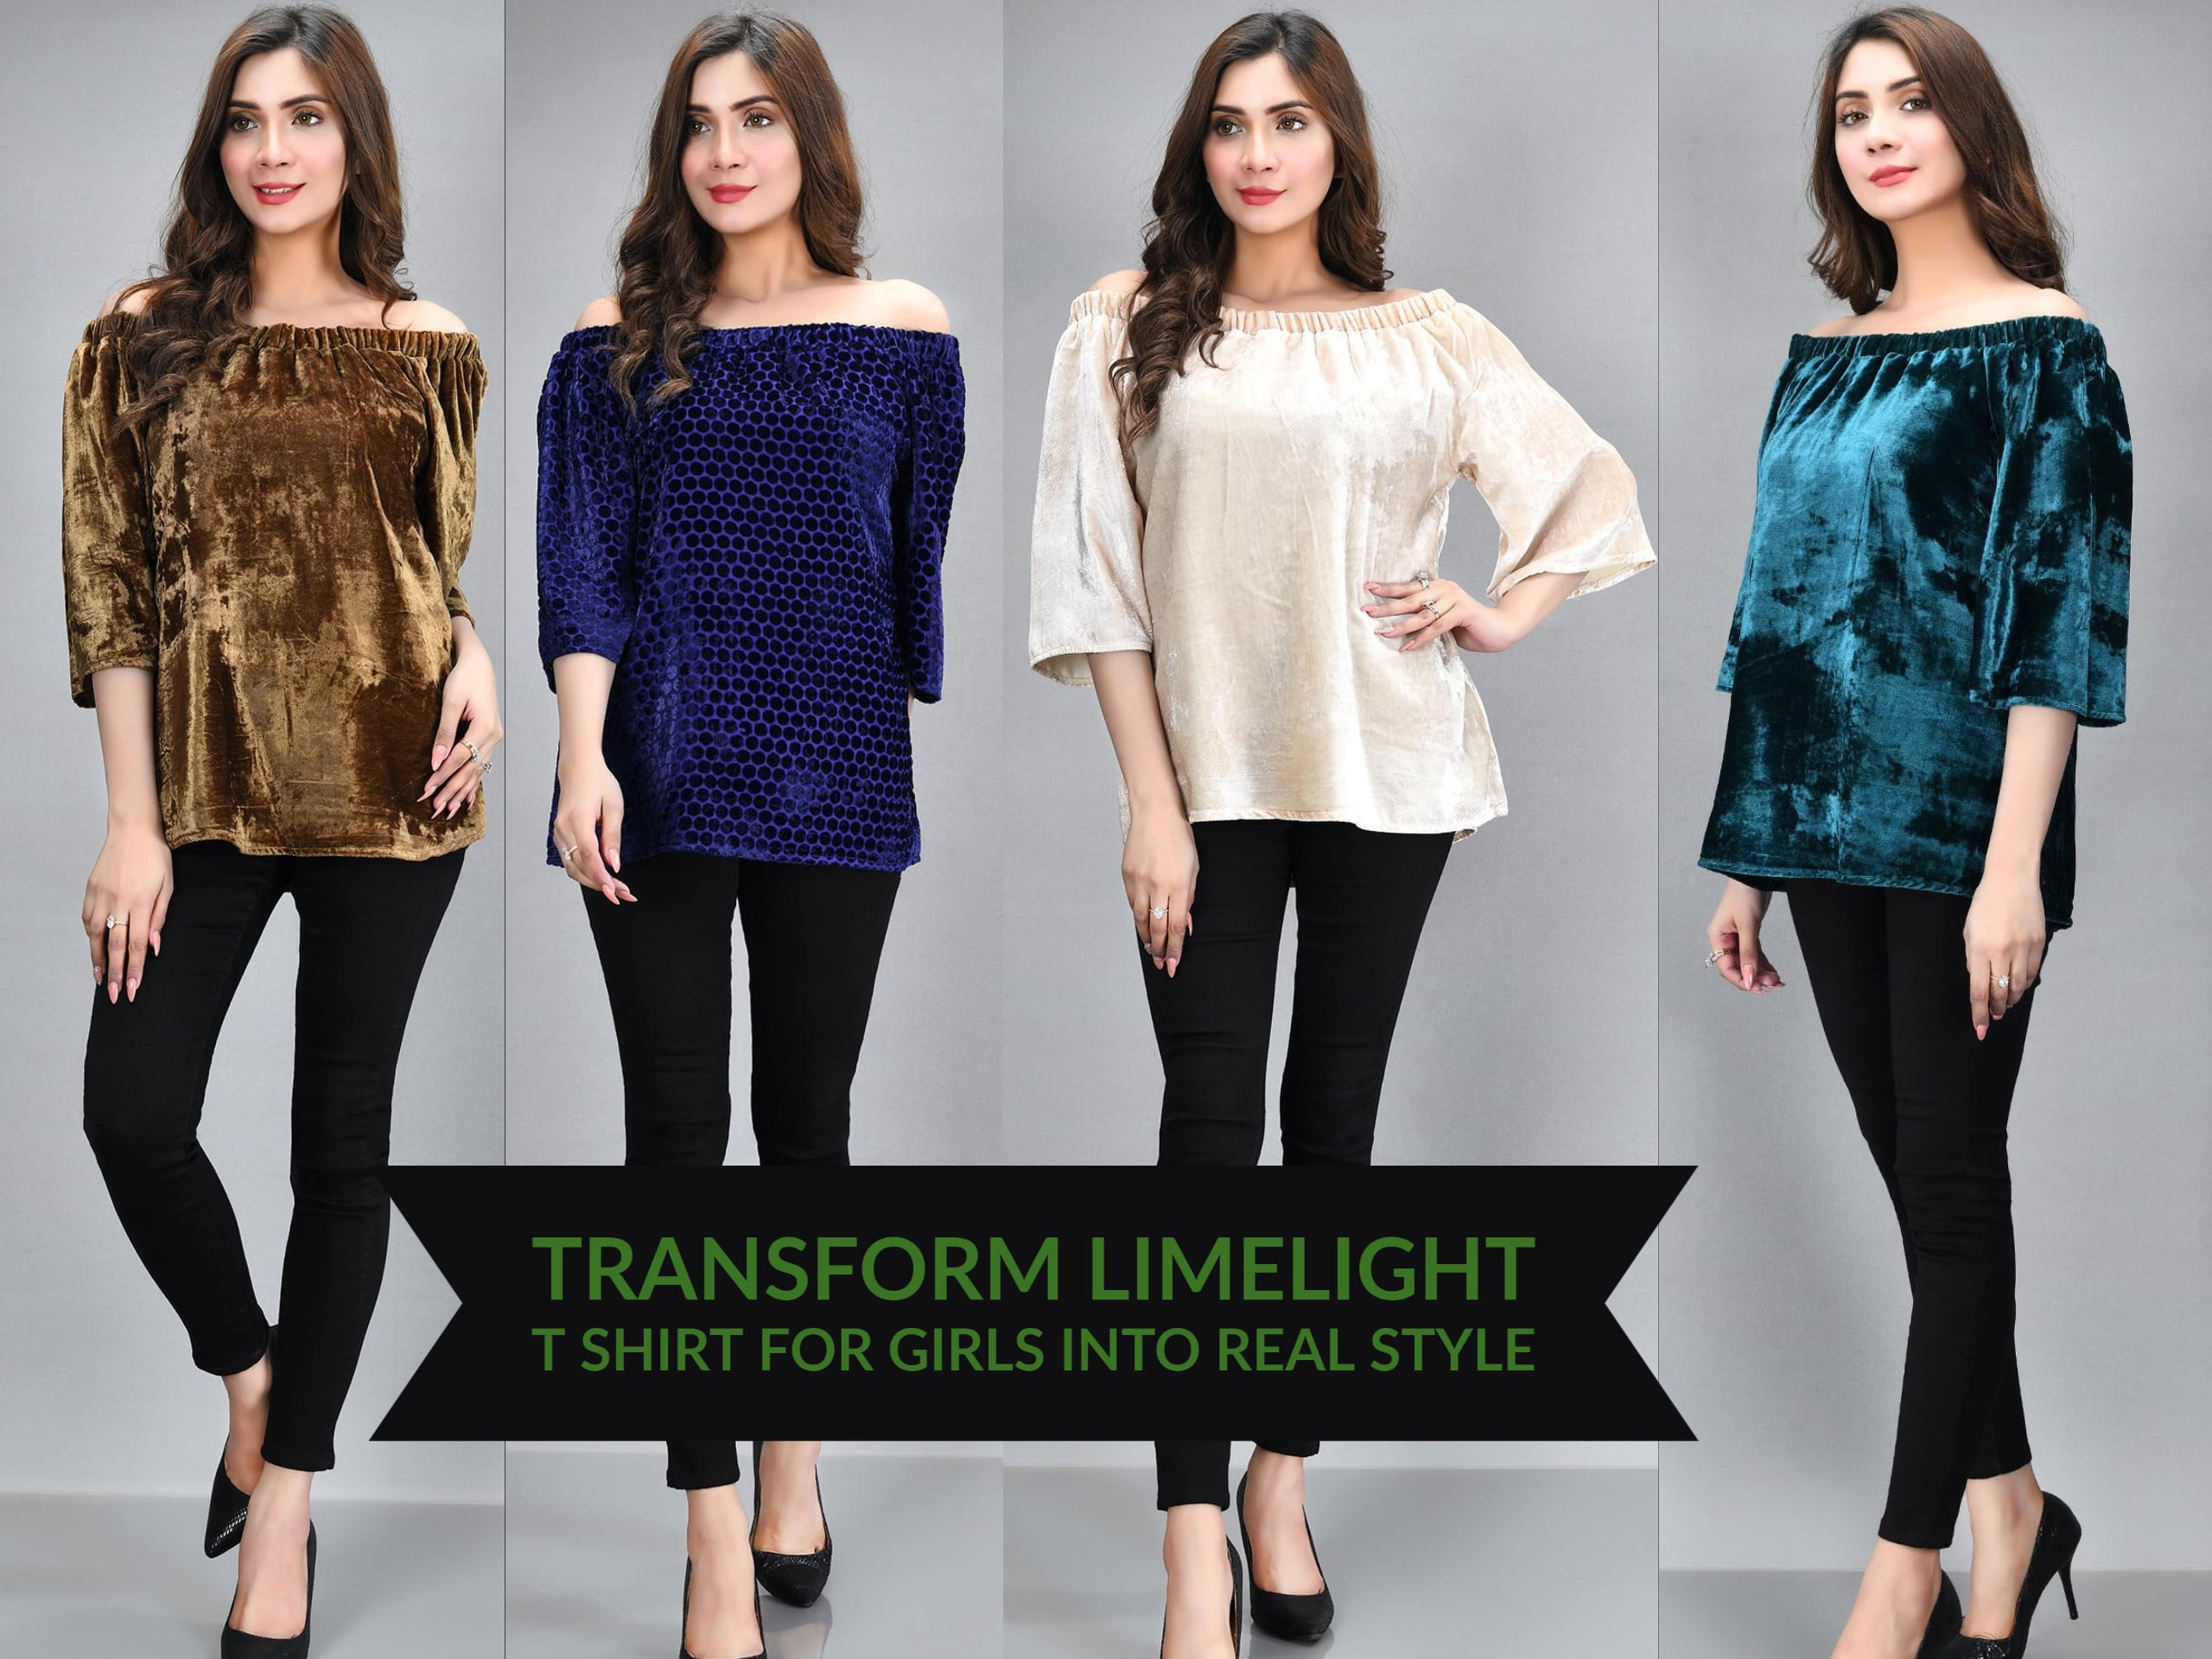 Transform Limelight T Shirt For Girls Into Real Style